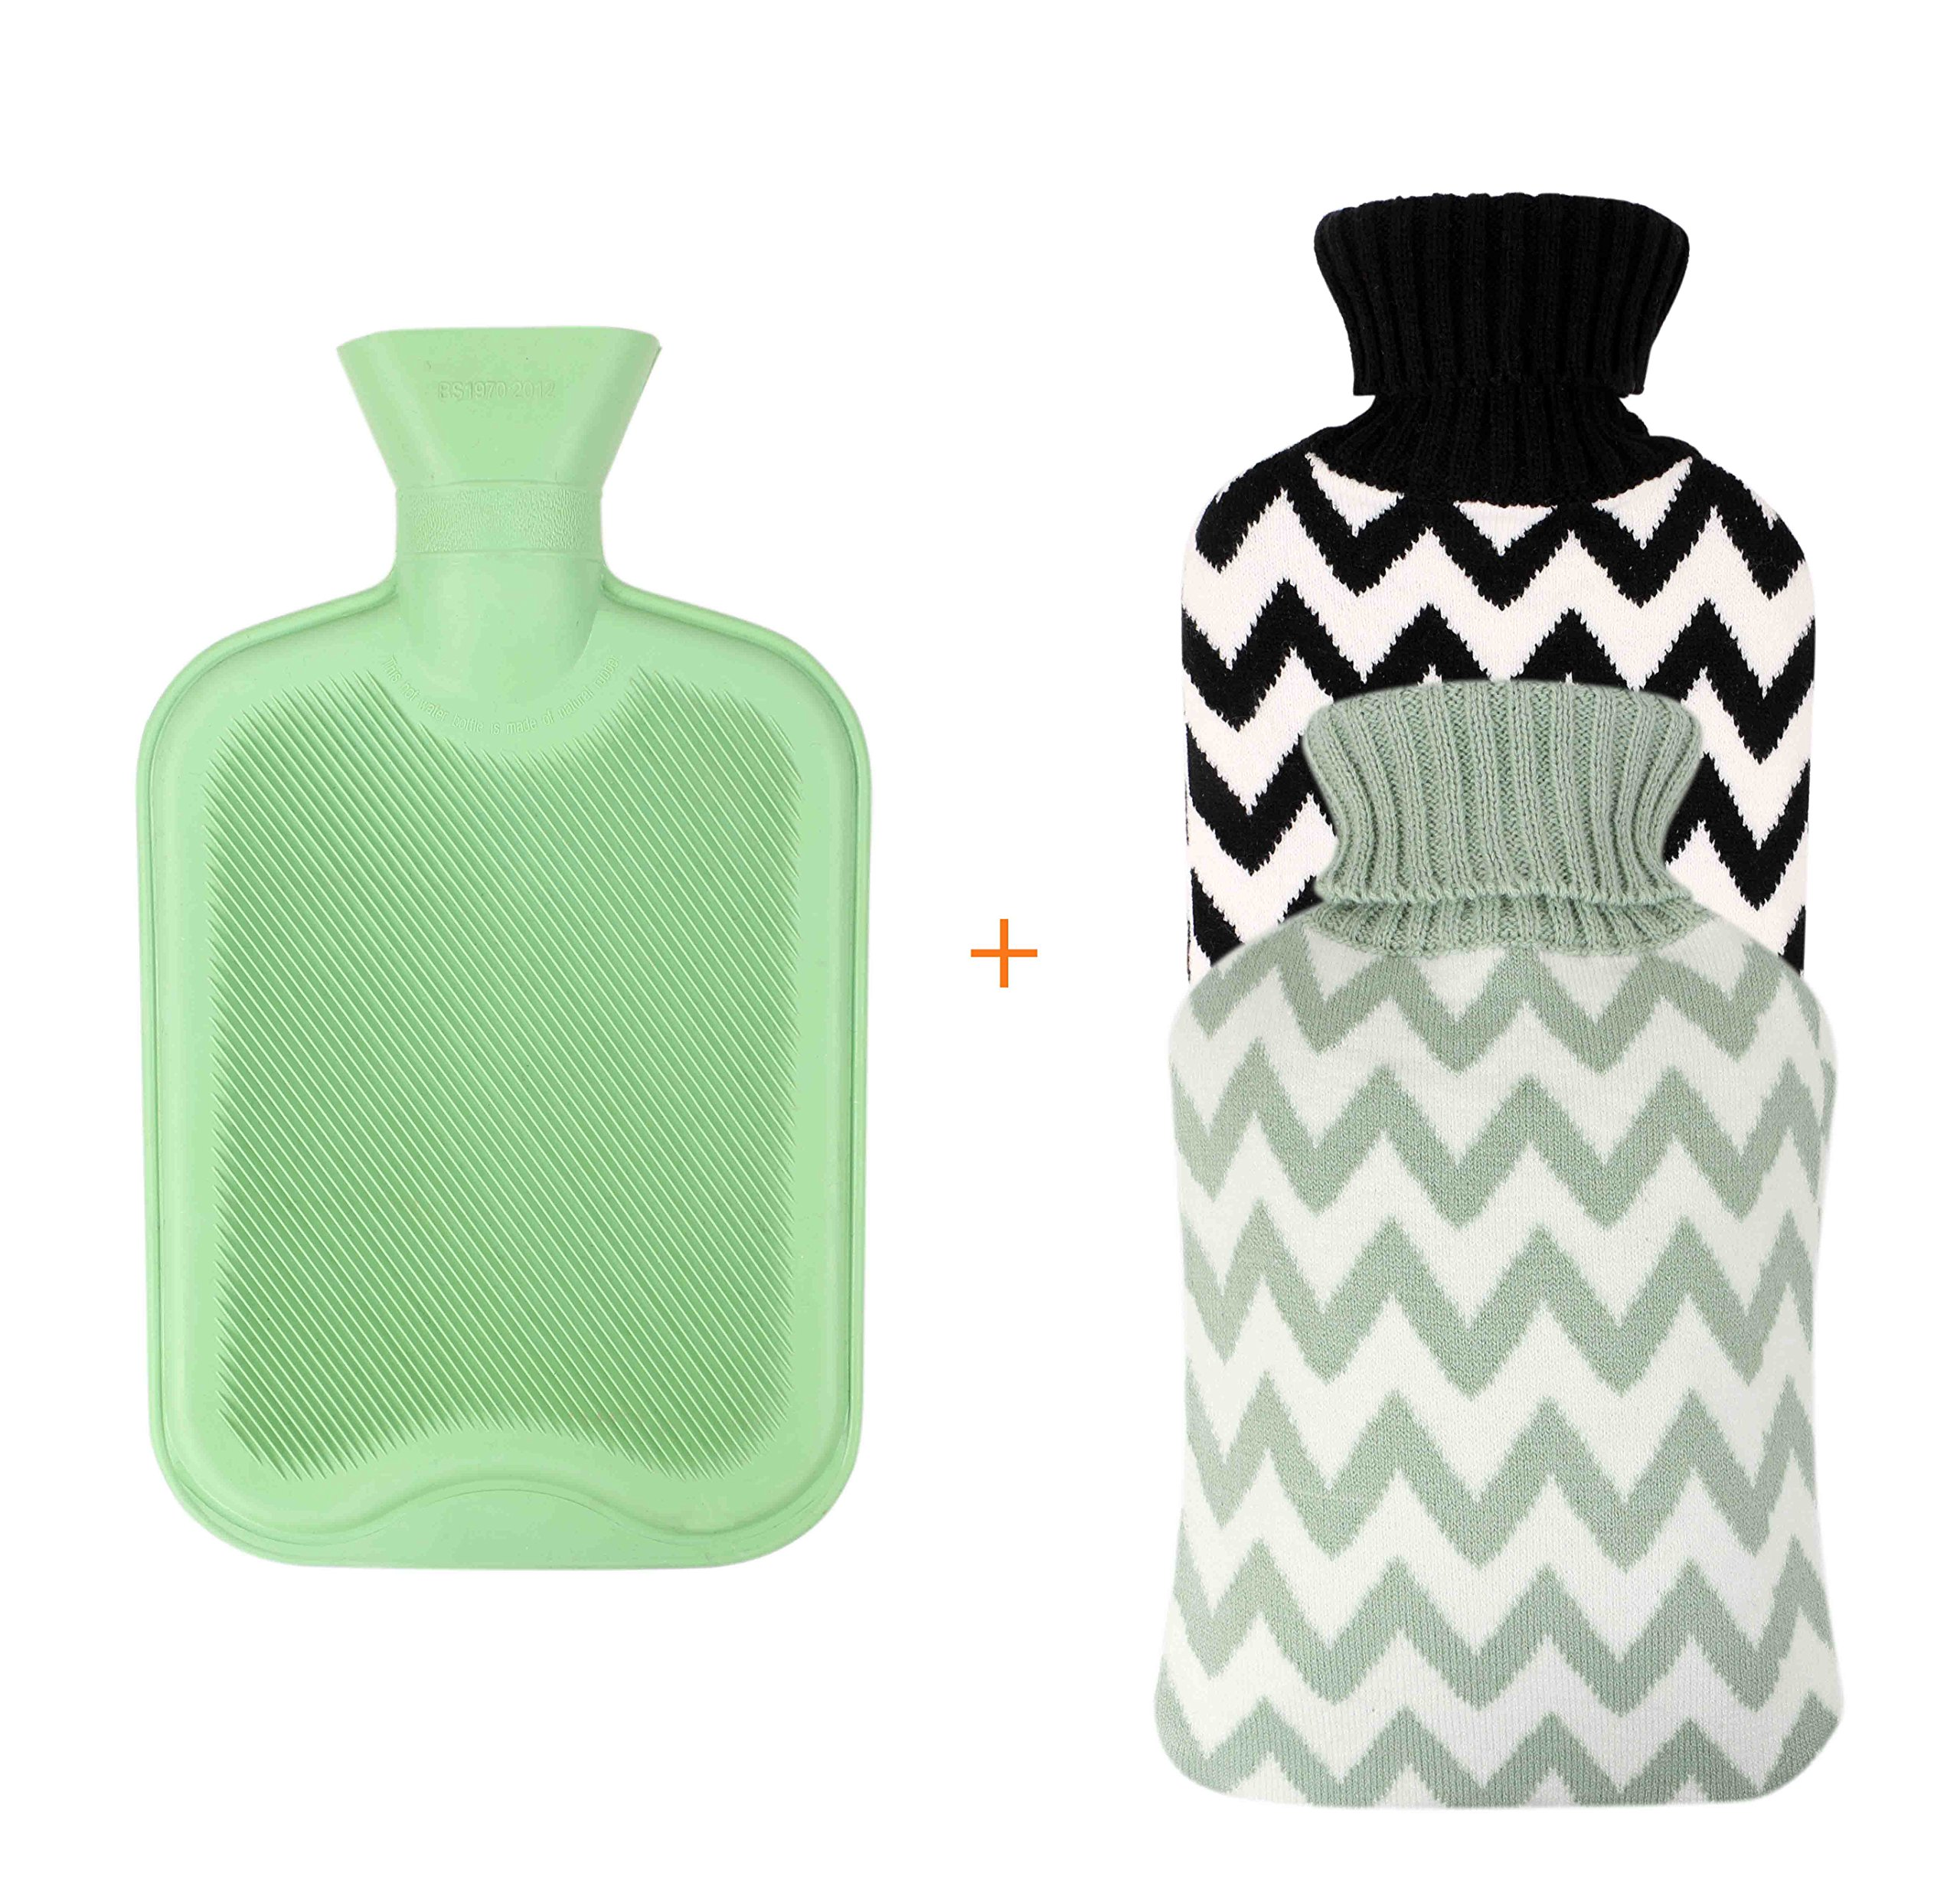 Excel Life Large Size Premium Classic Rubber Hot Water Bottle With 2 Cute Cozy Knit Covers (2 Liter, Black and Mint green stripe)